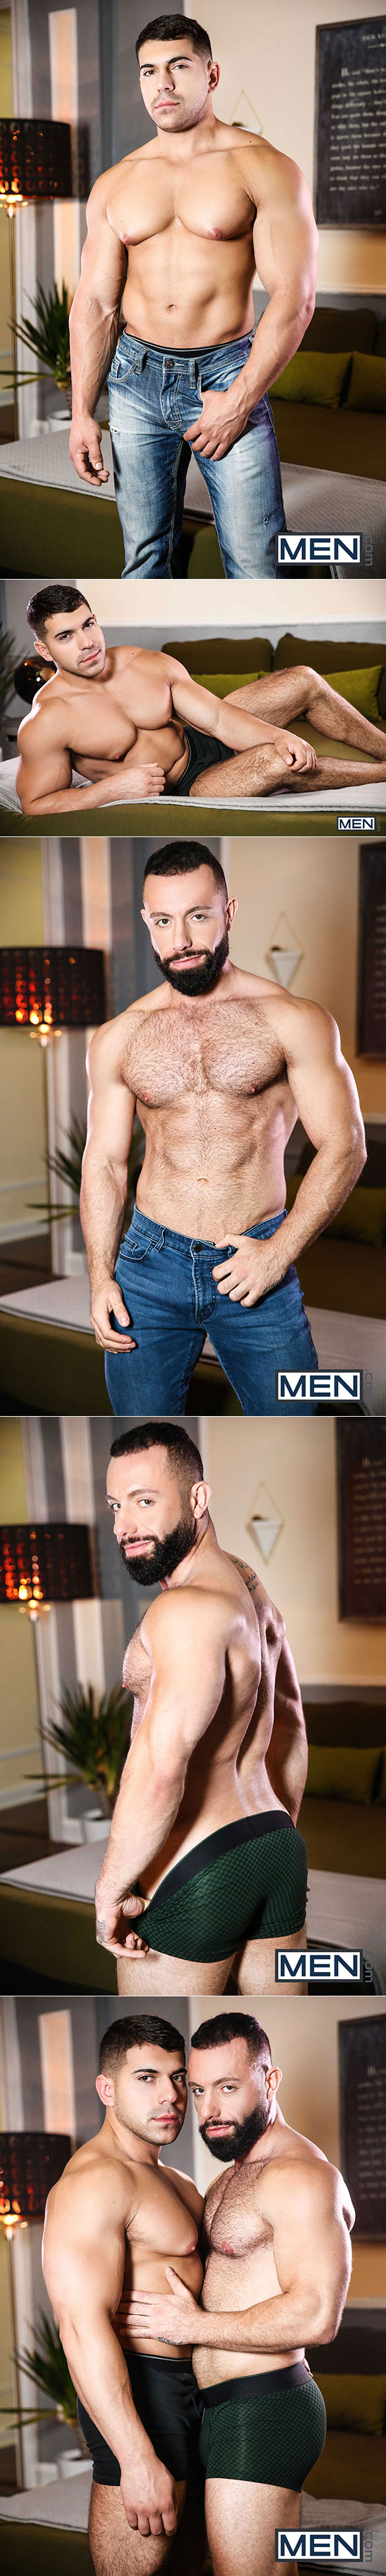 "Men.com: Damien Stone tops Eddy CeeTee in ""Look What I Can Do, Part 2"""